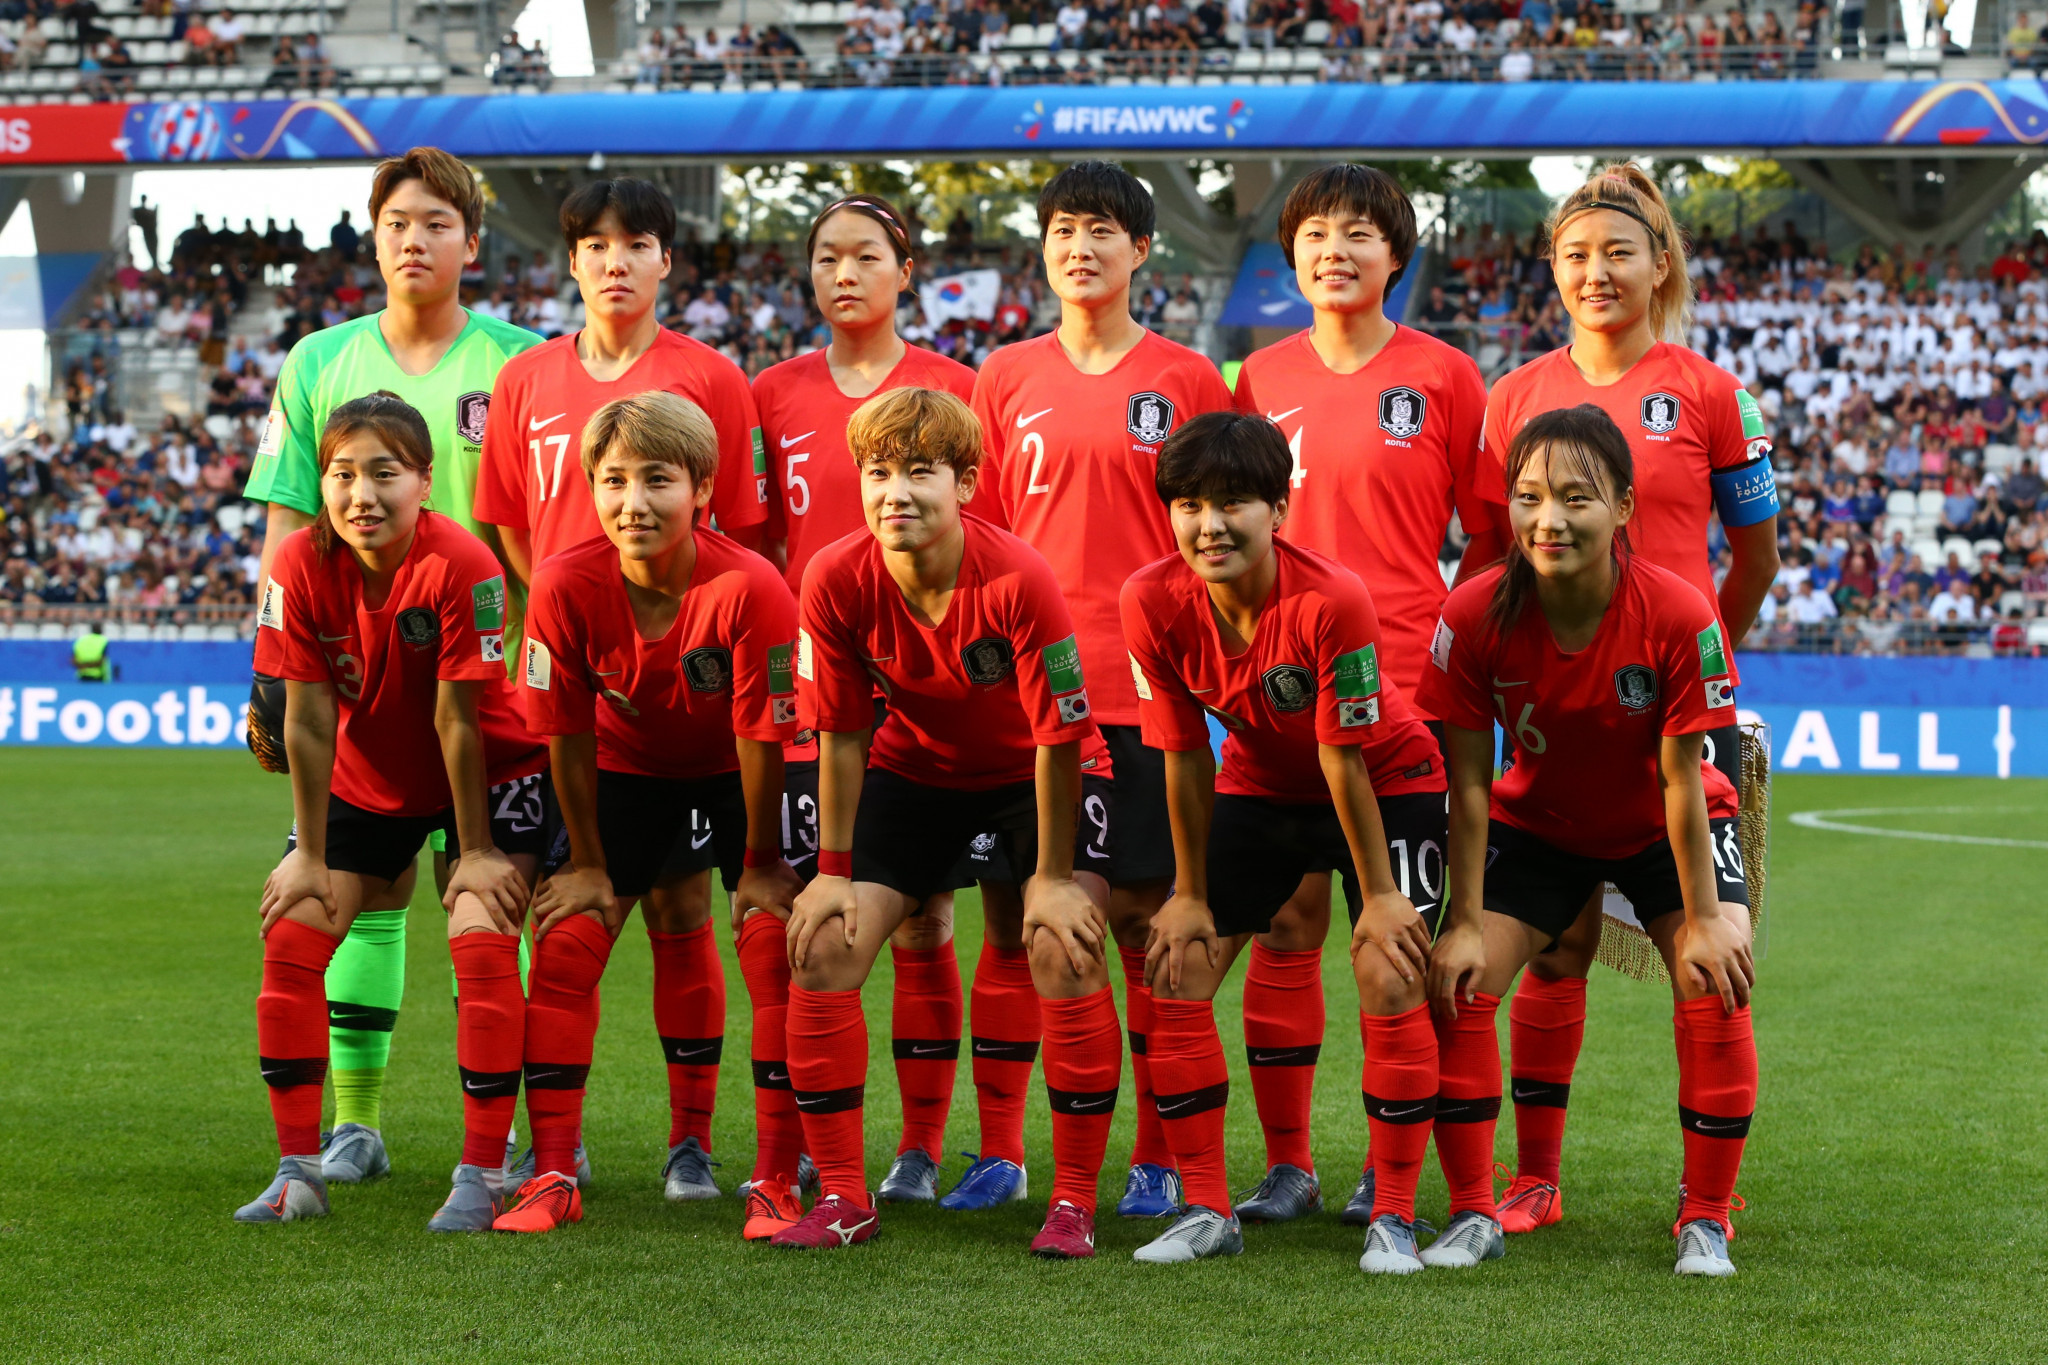 Women's football qualifier for Olympics to be rescheduled following Tokyo 2020 postponement